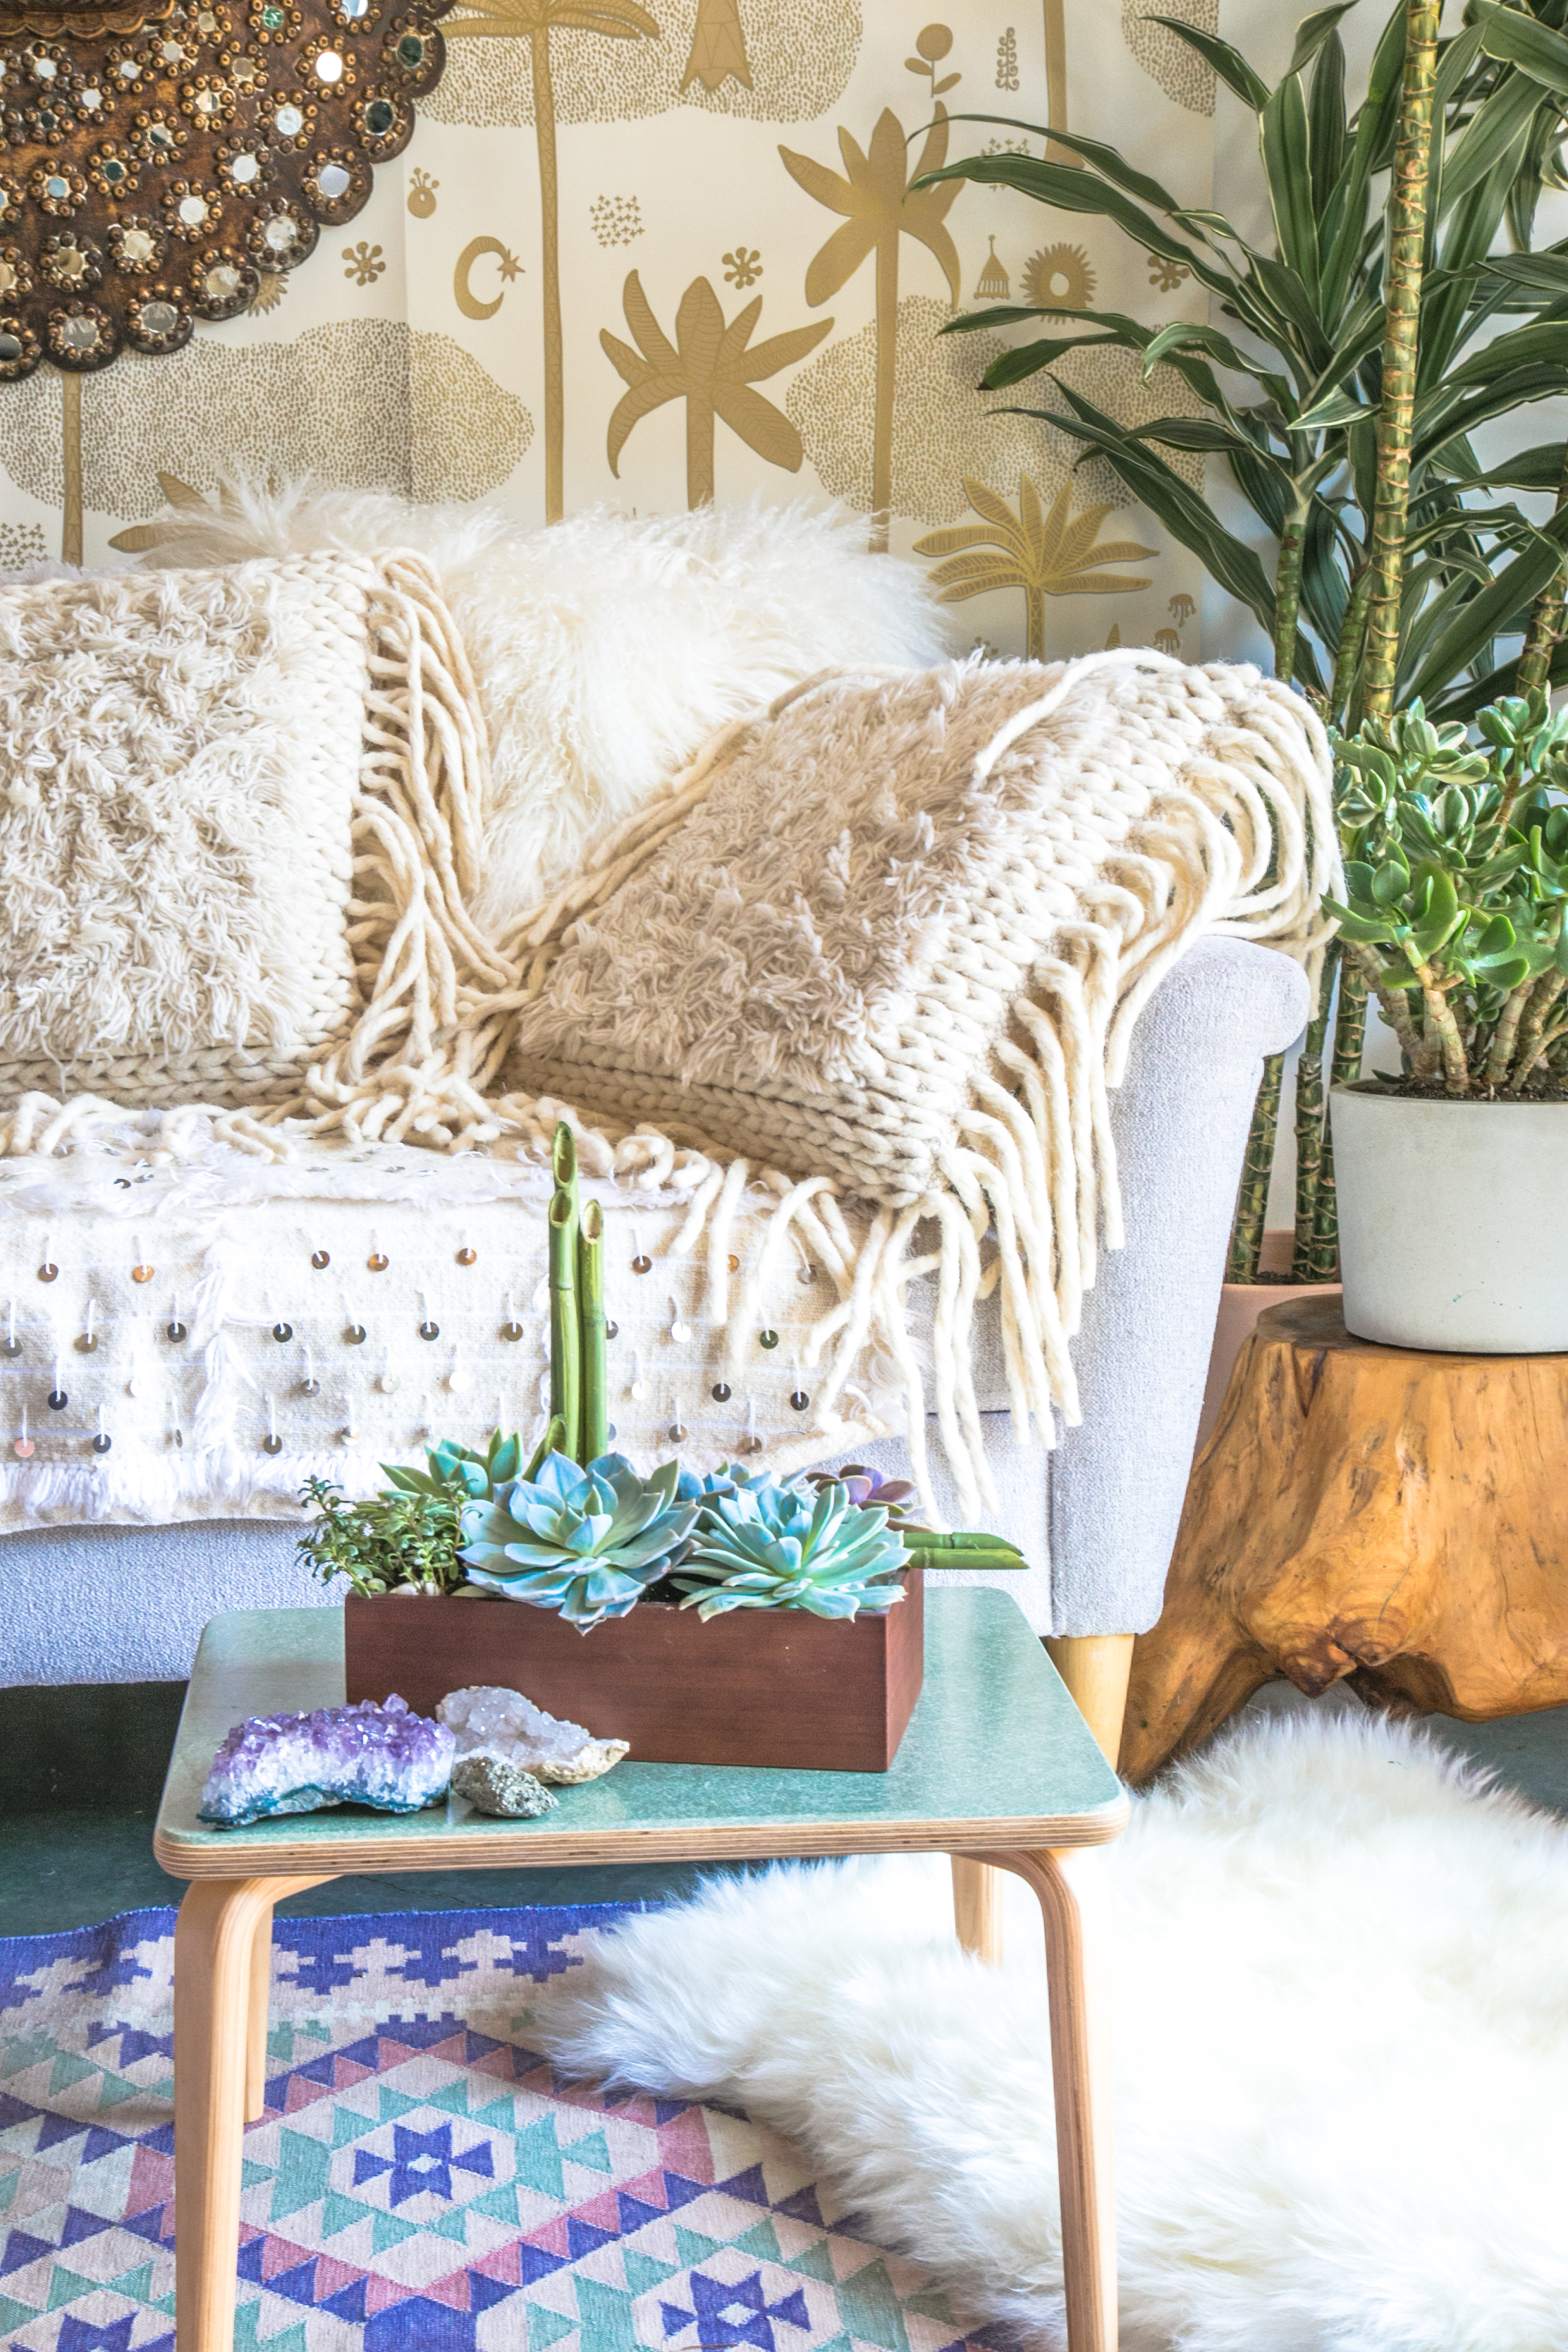 bamboo garden on table with tan couch